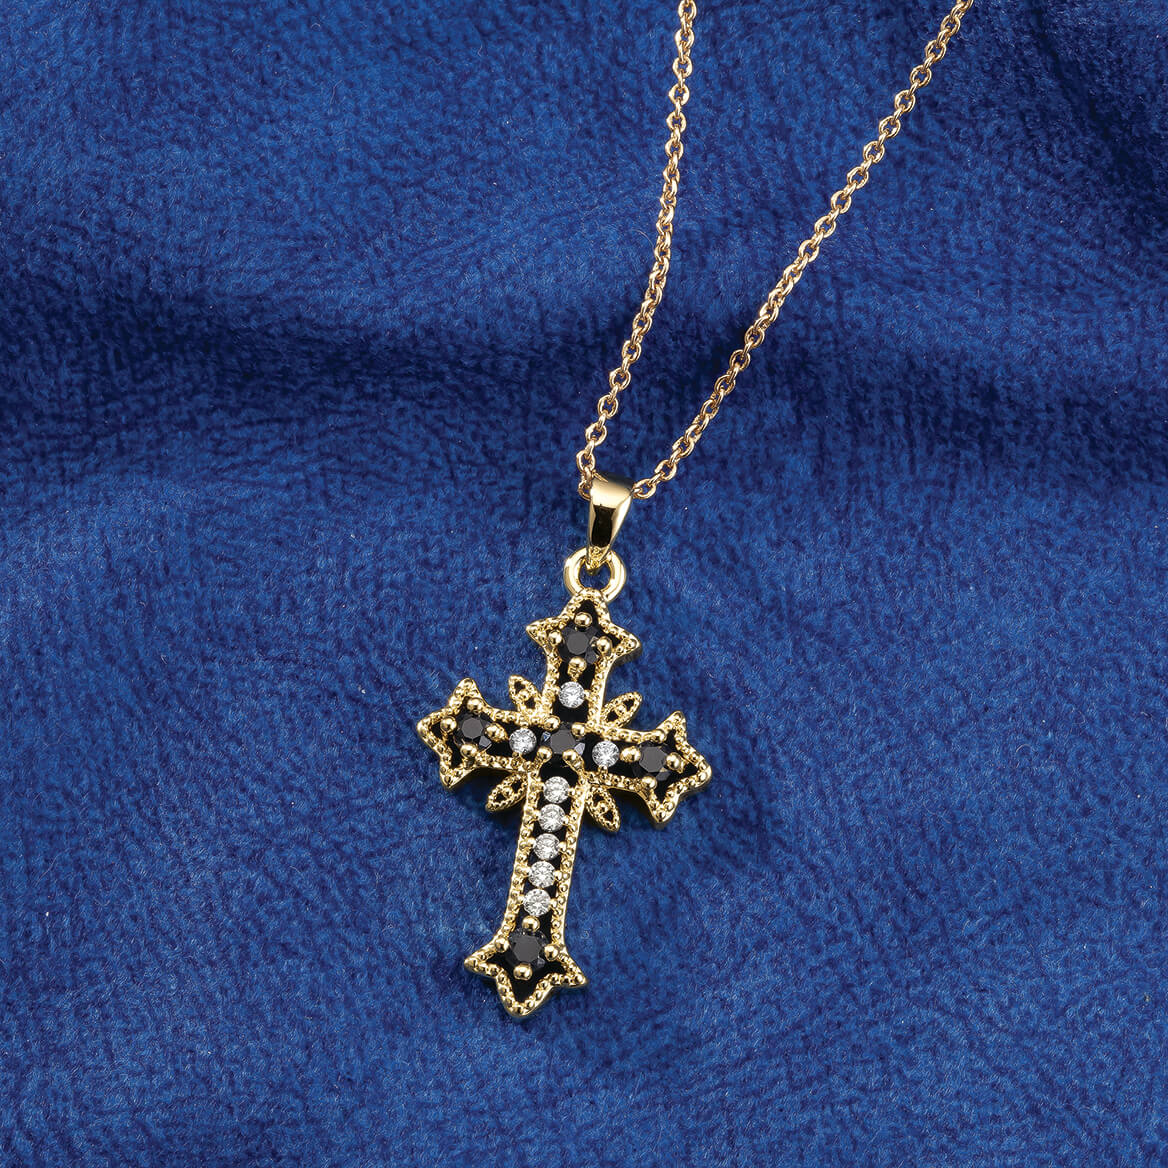 Gold and Black Cross Necklace-369318